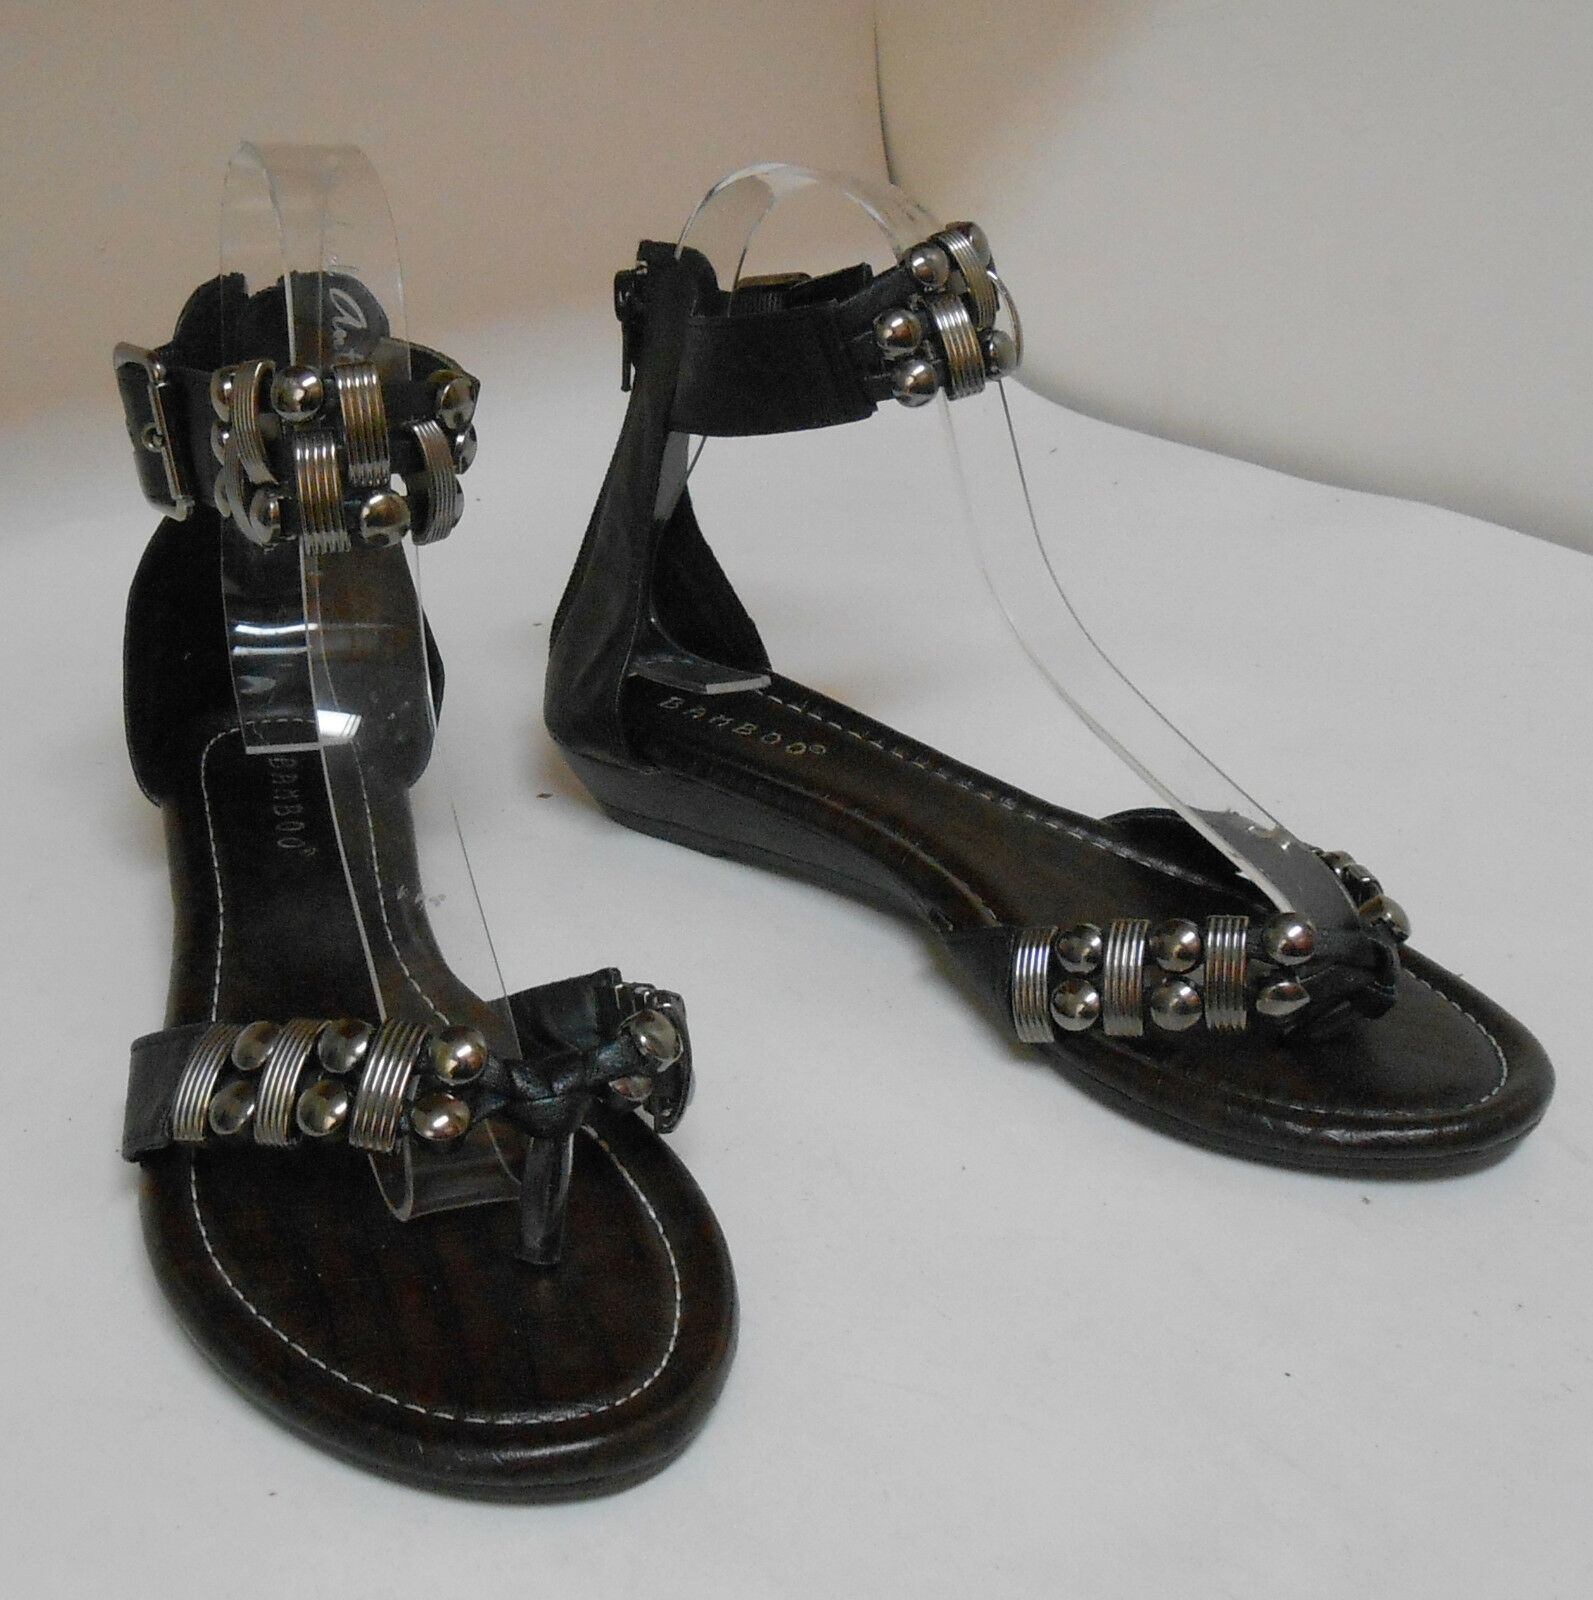 Summer Black Womens Shoes Ankle Strap Sandals Studs Sandals Strap Size 5.5 be33eb